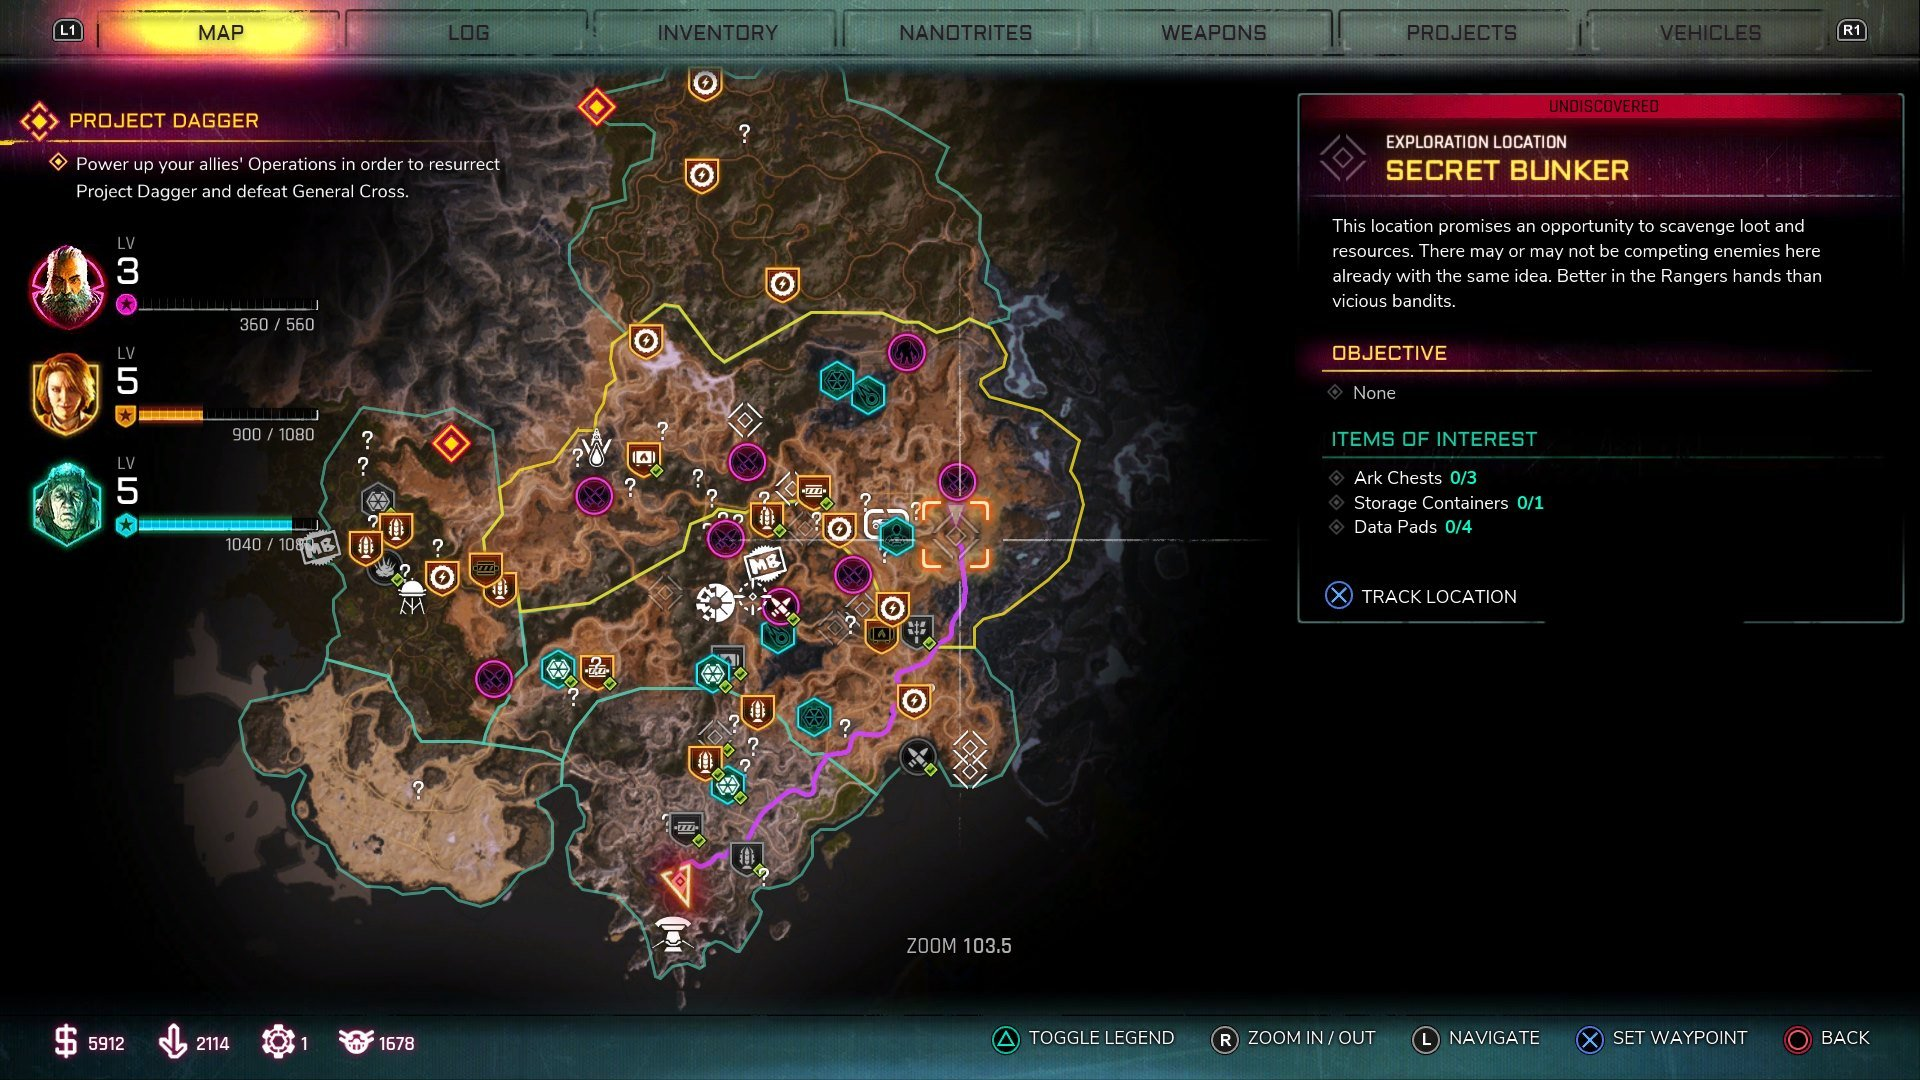 The Secret Bunker and Elon Tusk Easter Egg can be found in the Torn Plains region of the Rage 2 map.